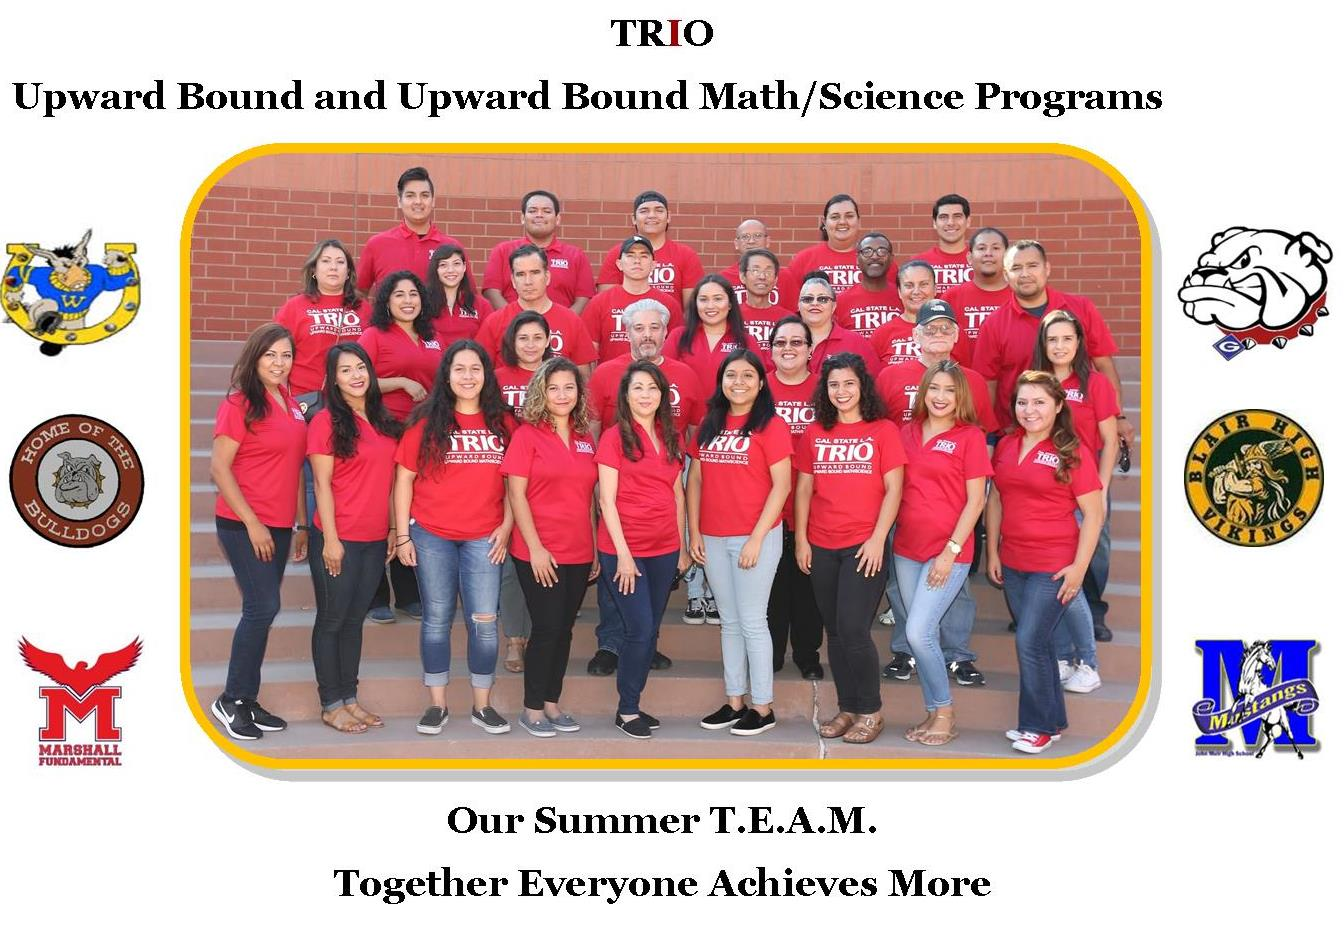 Cal State LA Upward Bound Summer 2017